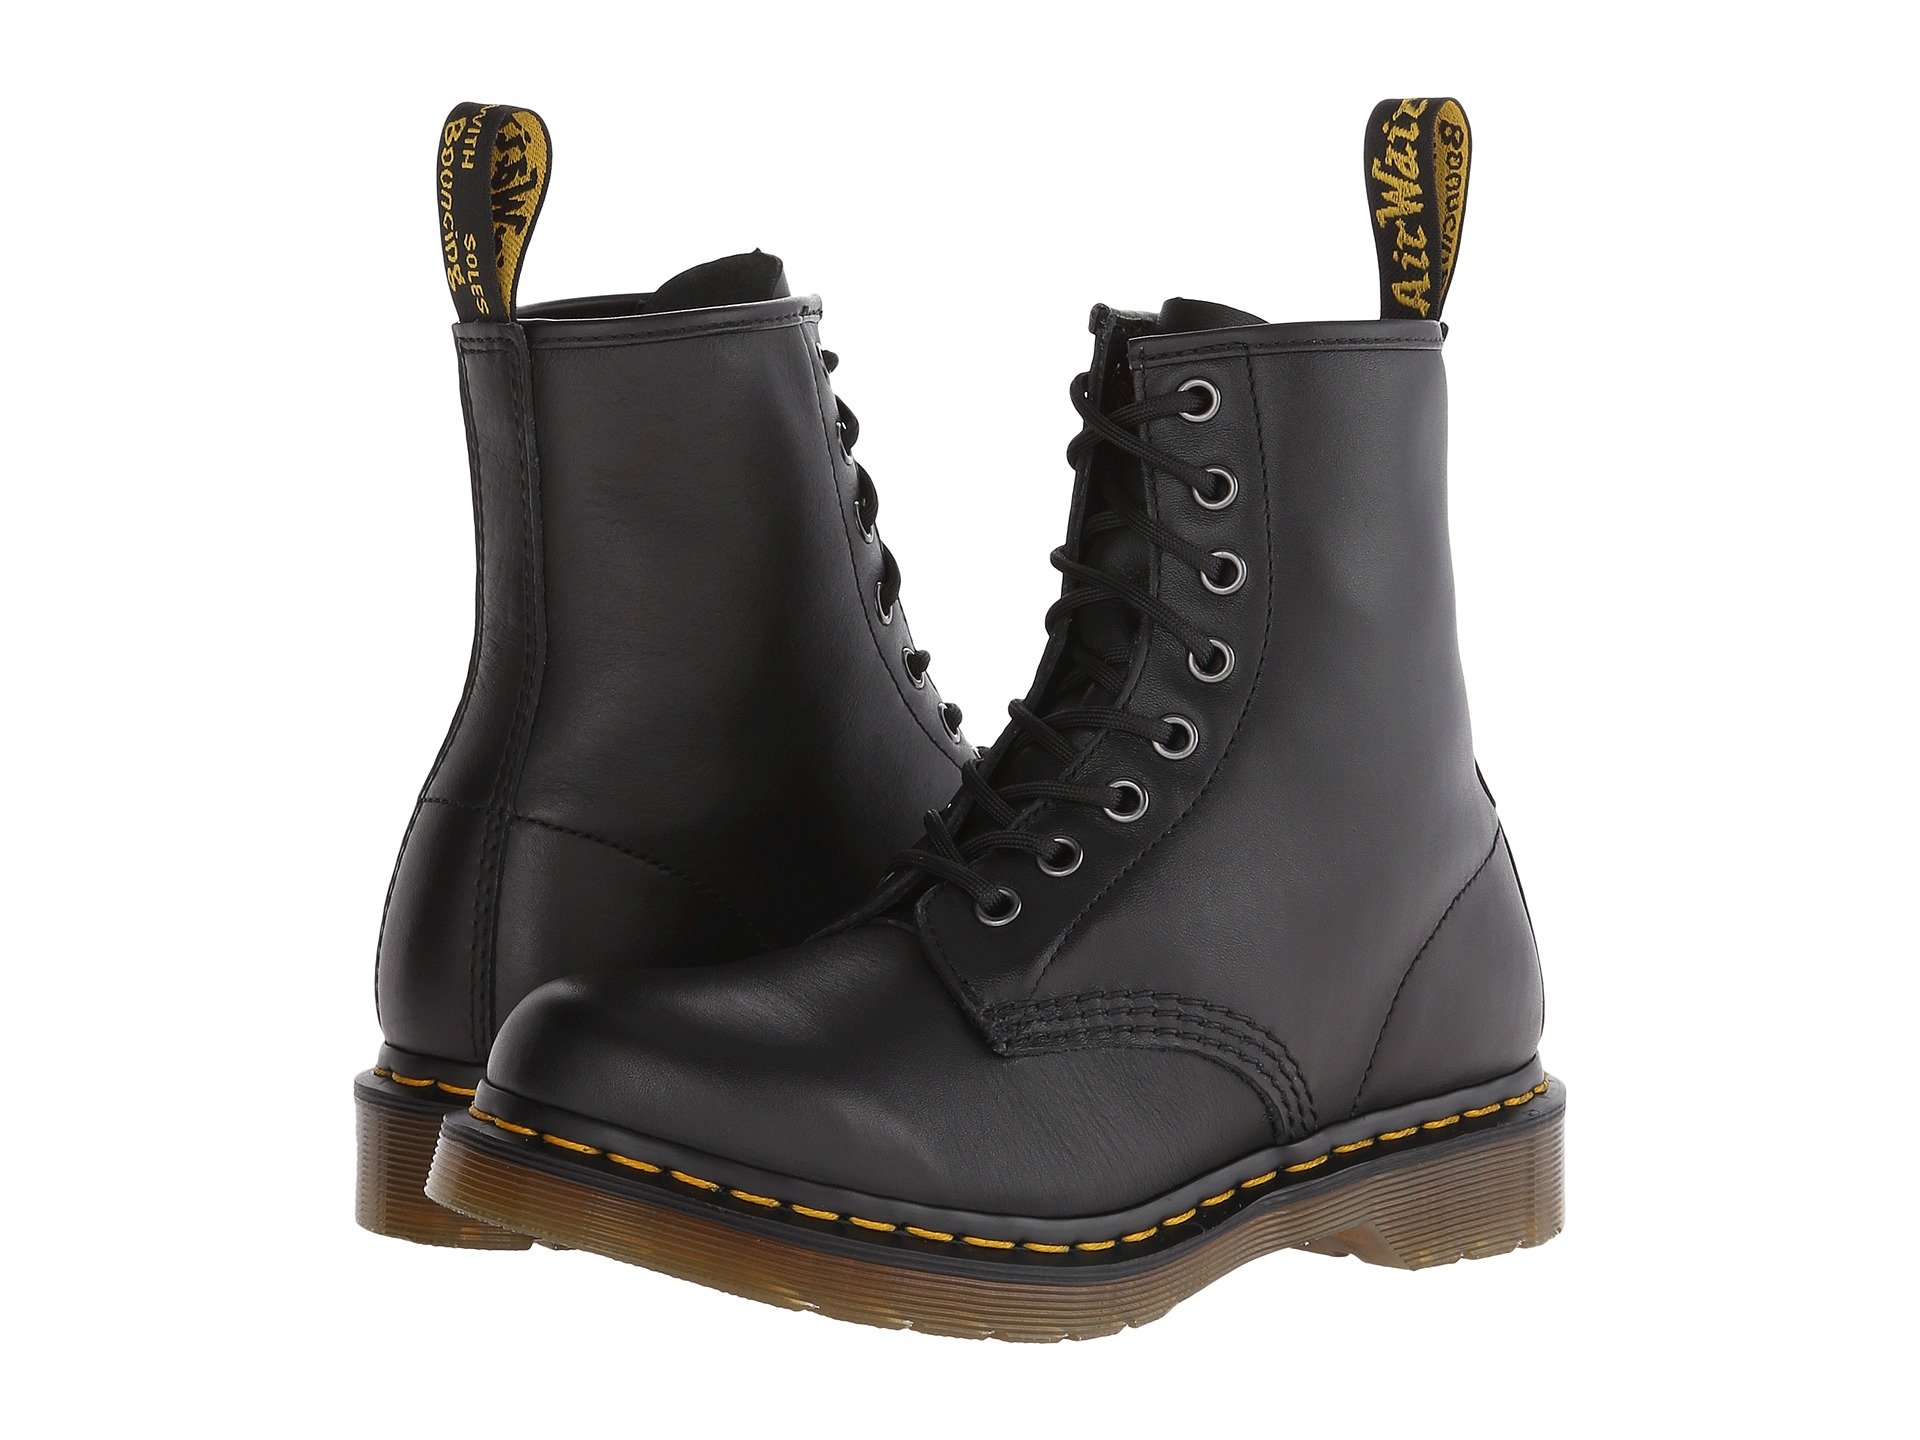 fa3f886ef9a Women's Dr. Martens Boots + FREE SHIPPING | Shoes | Zappos.com